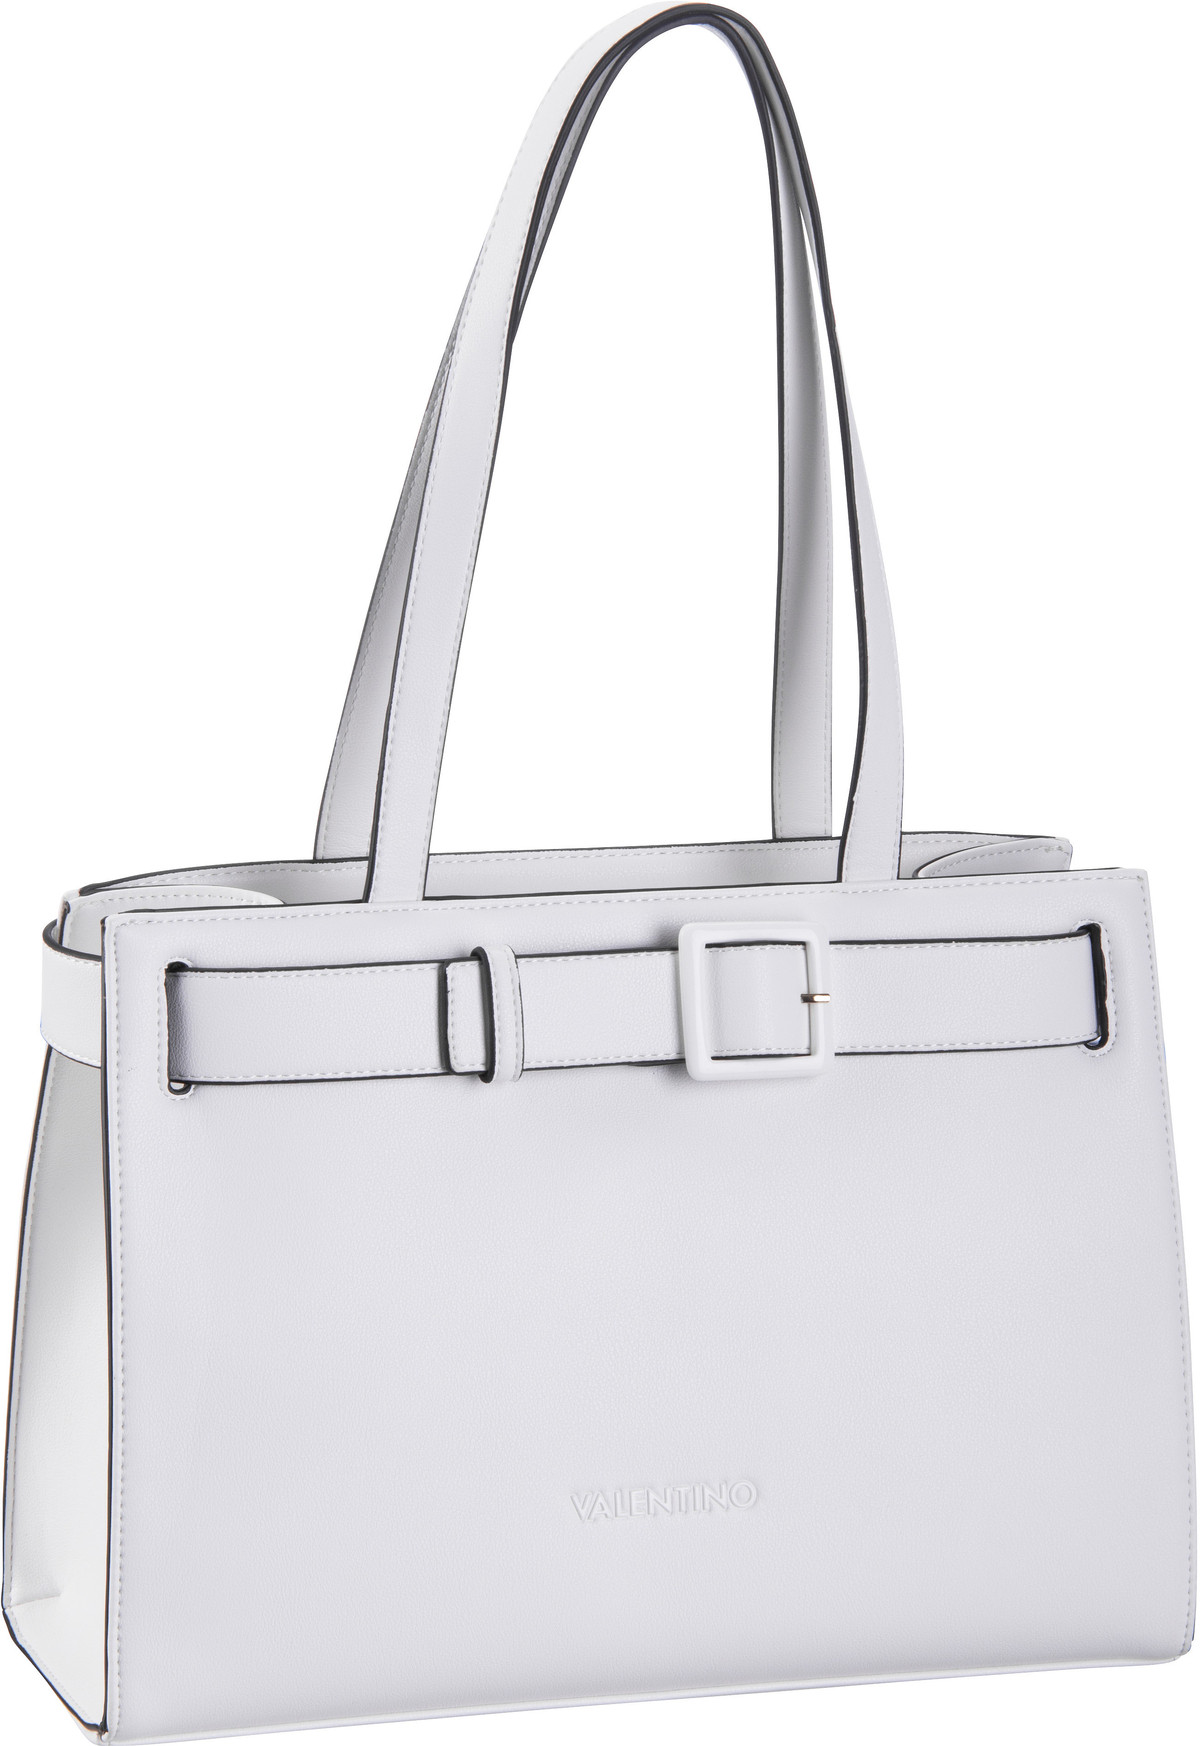 Bags Handtasche Angelo Shopping H01 Bianco